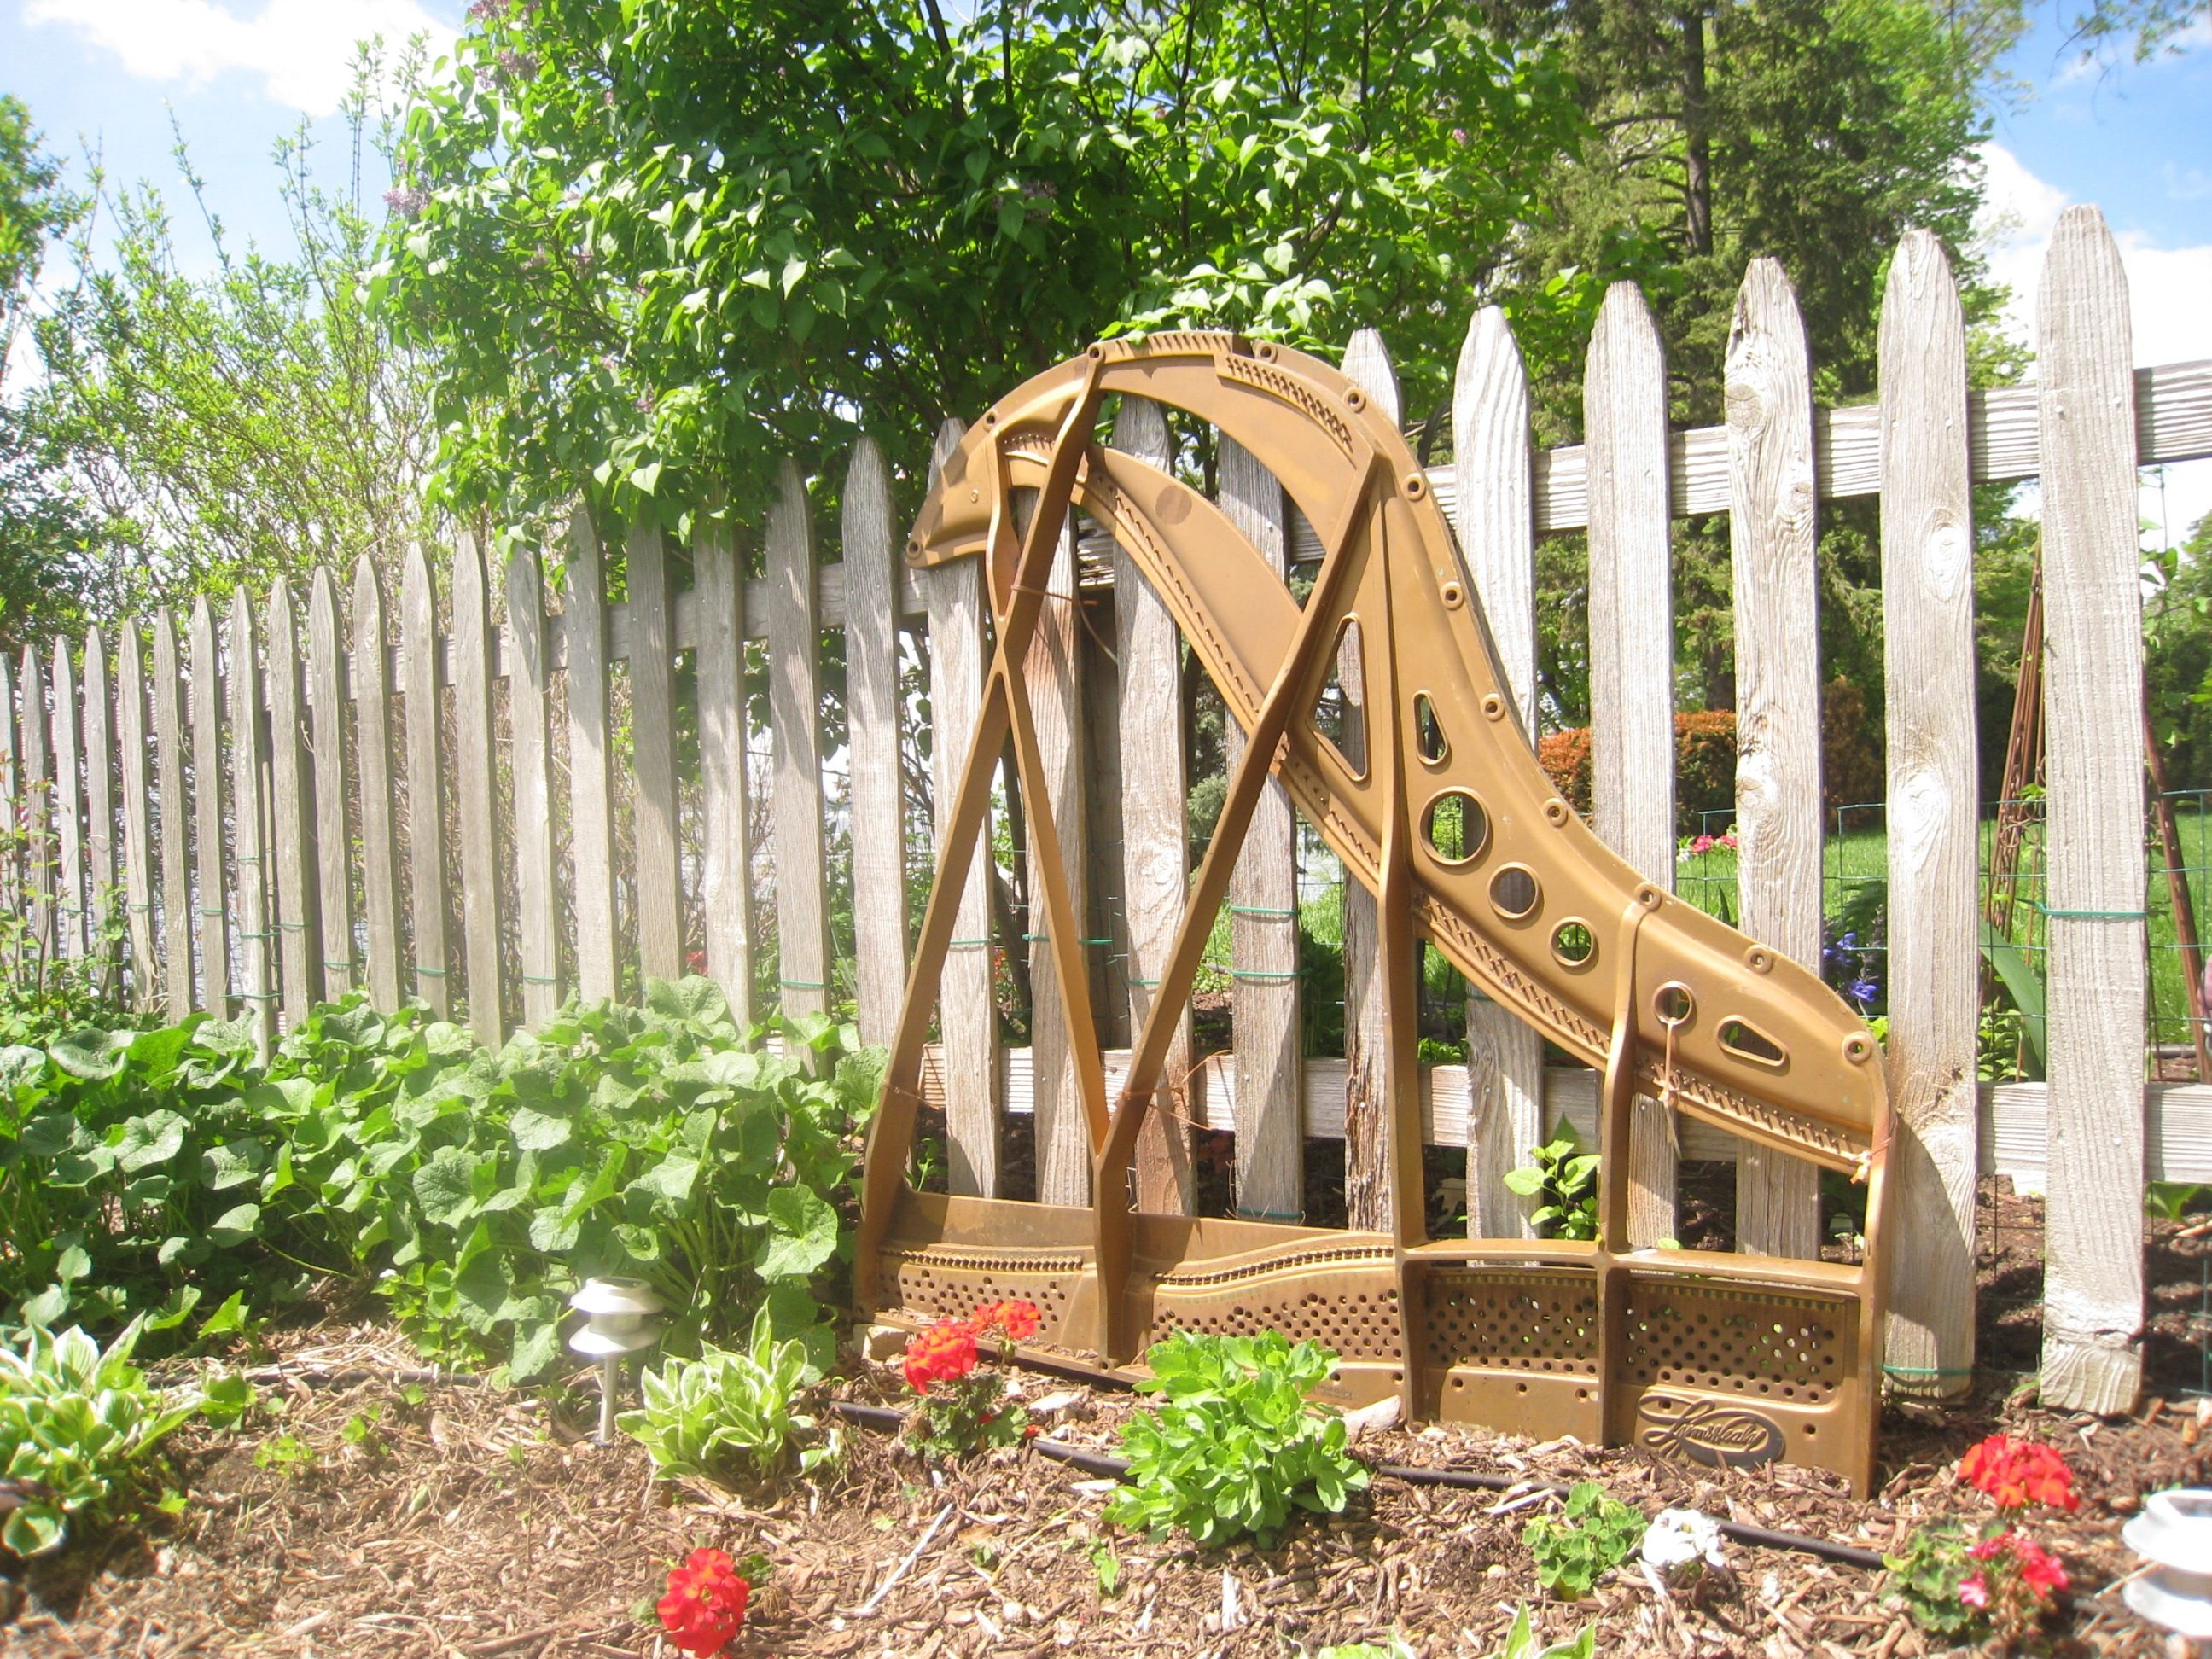 The Harp From A Repurposed Baby Grand Piano Has Been Moved To The Garden An Interesting Lovely Sculptural Piece Piano Crafts Piano Art Old Pianos